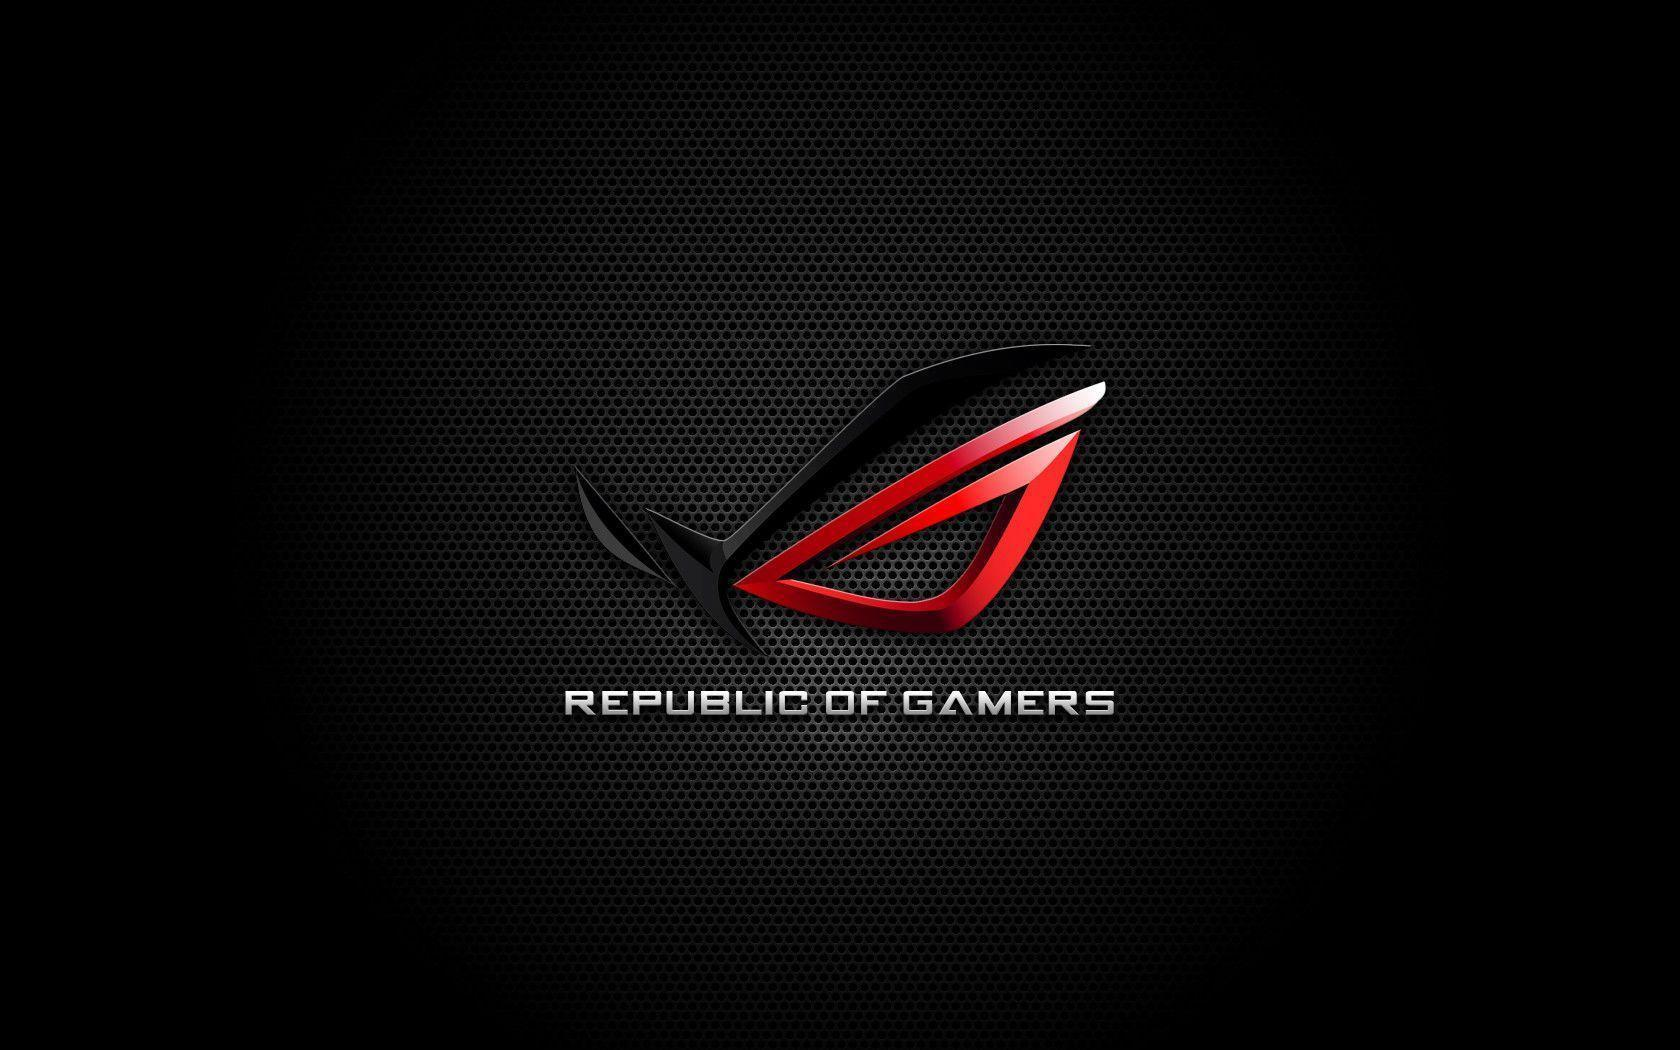 Republic Of Gamers Wallpapers   Wallpaper Cave Republic Of Gamers Wallpapers     Taringa